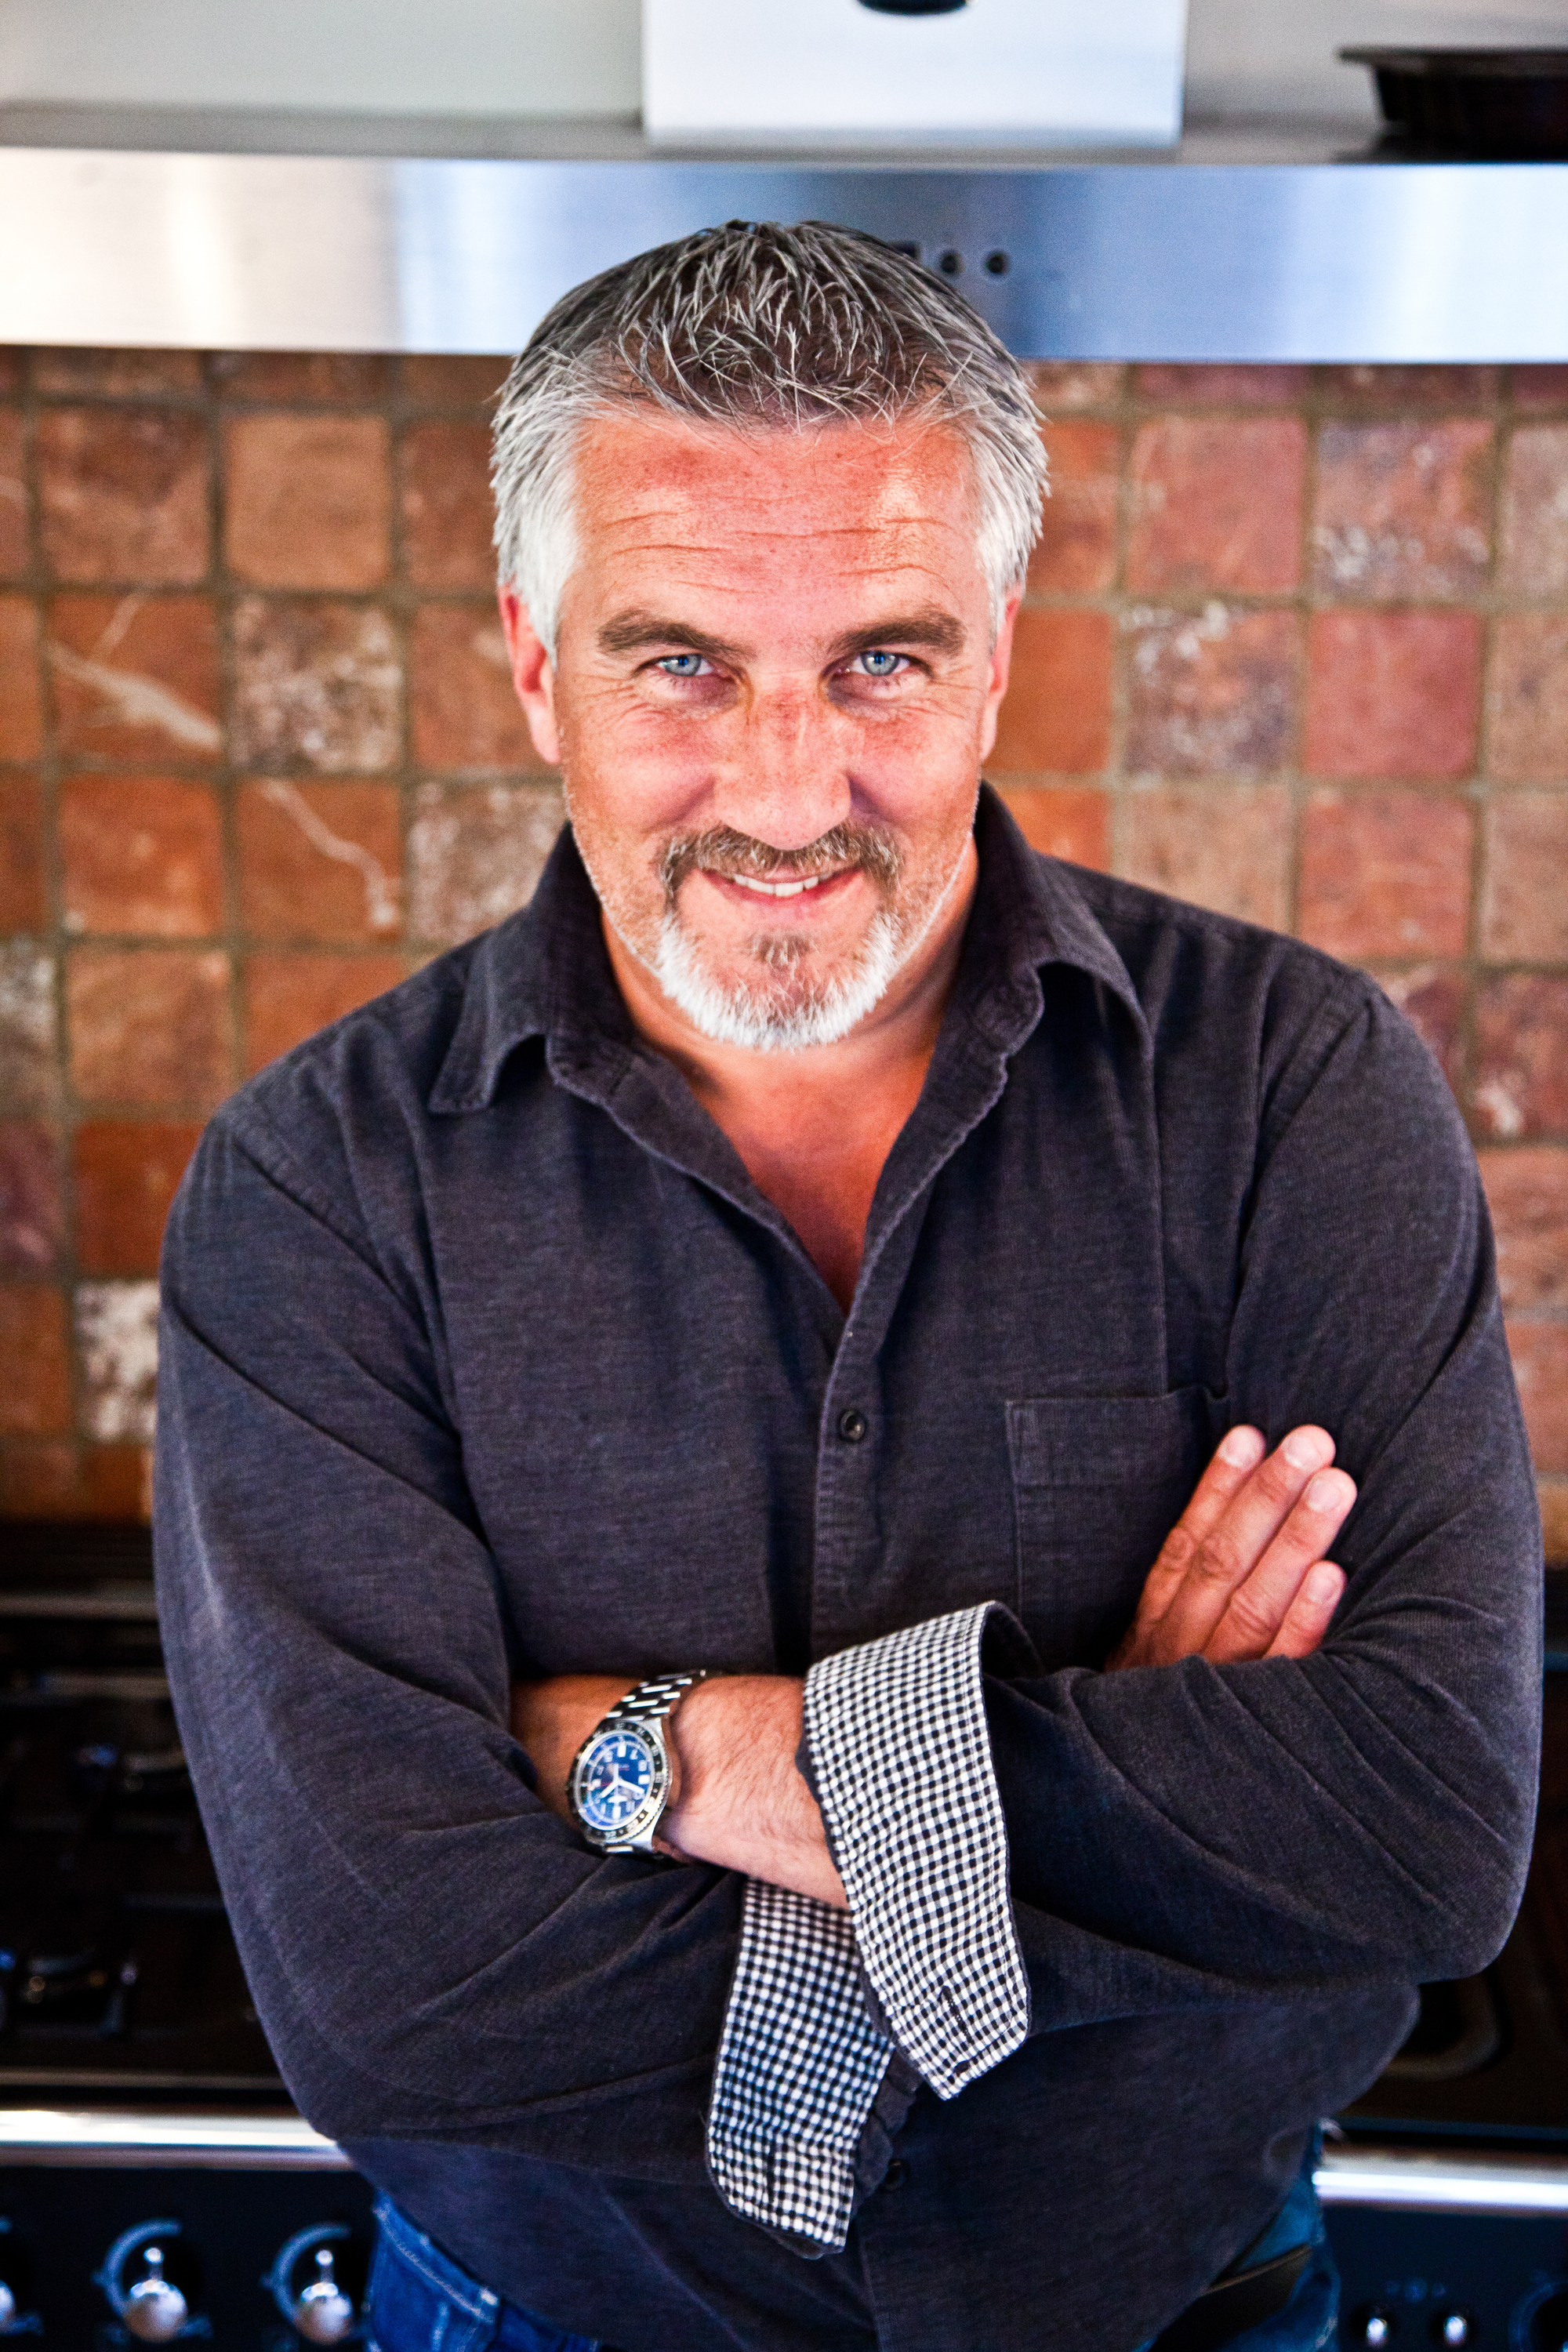 Celebrity chef Paul Hollywood gave a cooking demonstration at last year's Flavours of Herefordshire Food Festival.